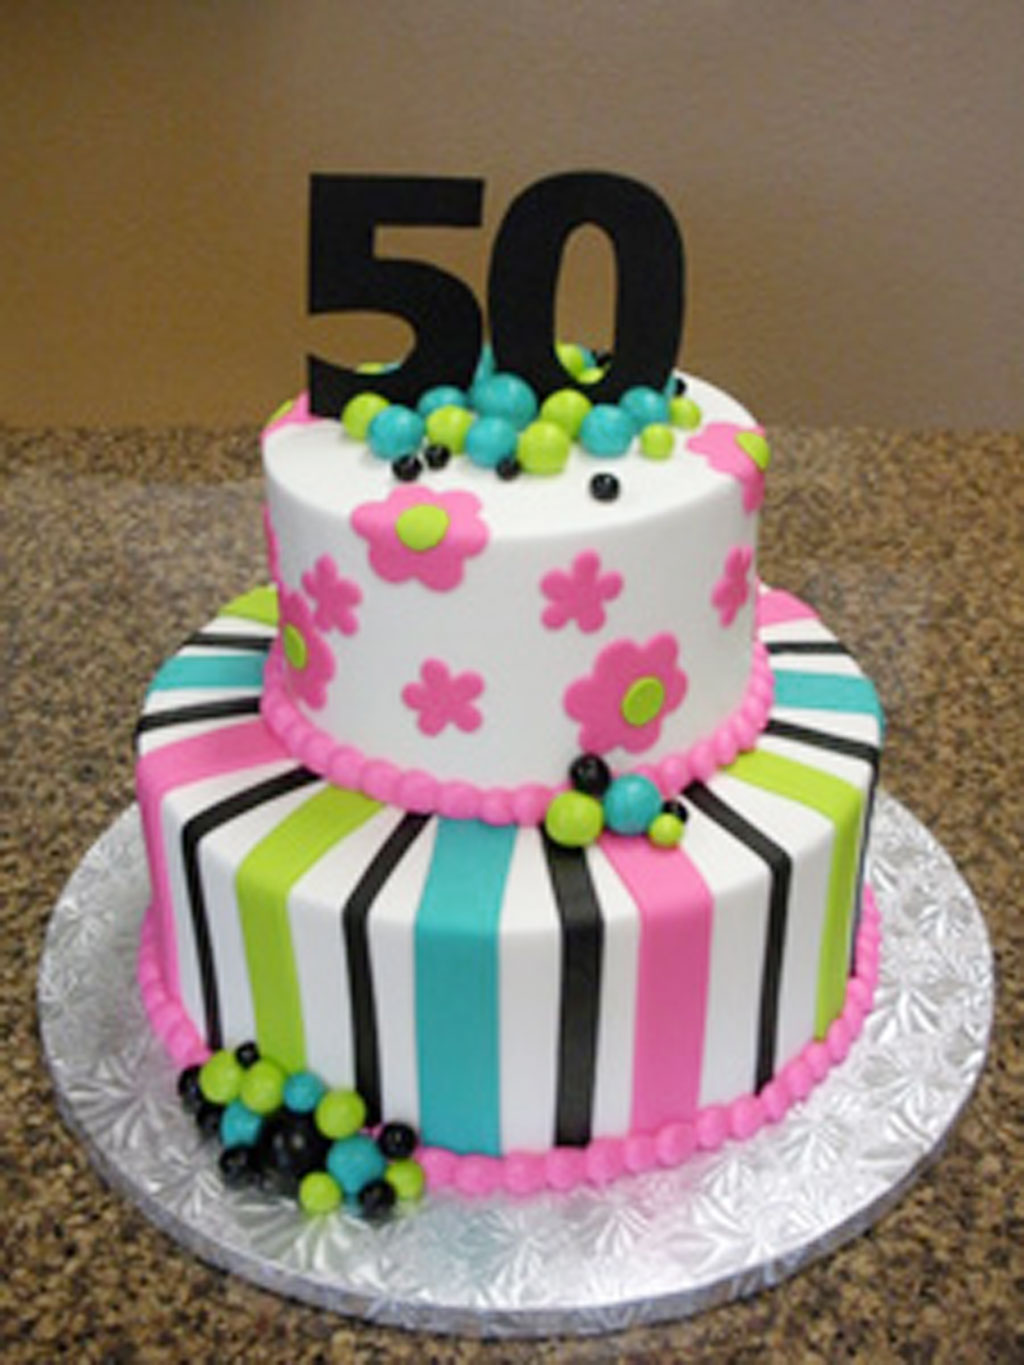 Cake Ideas For Female Birthday : 50th Birthday Cakes Pictures For Women Birthday Cake ...